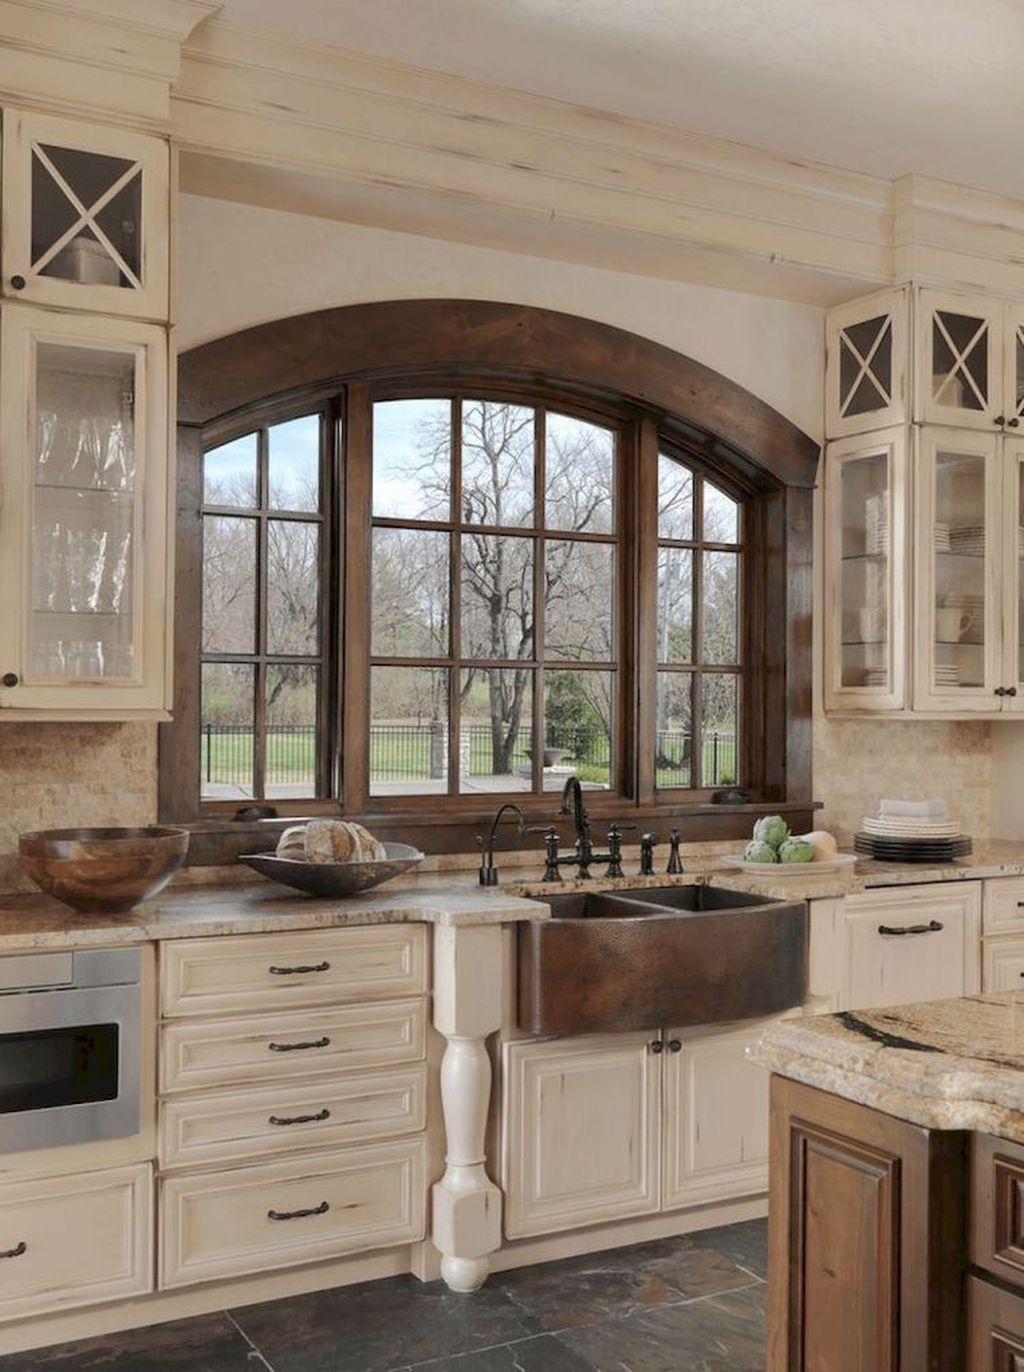 Rustic kitchen cabinet design ideas are very popular this year 51